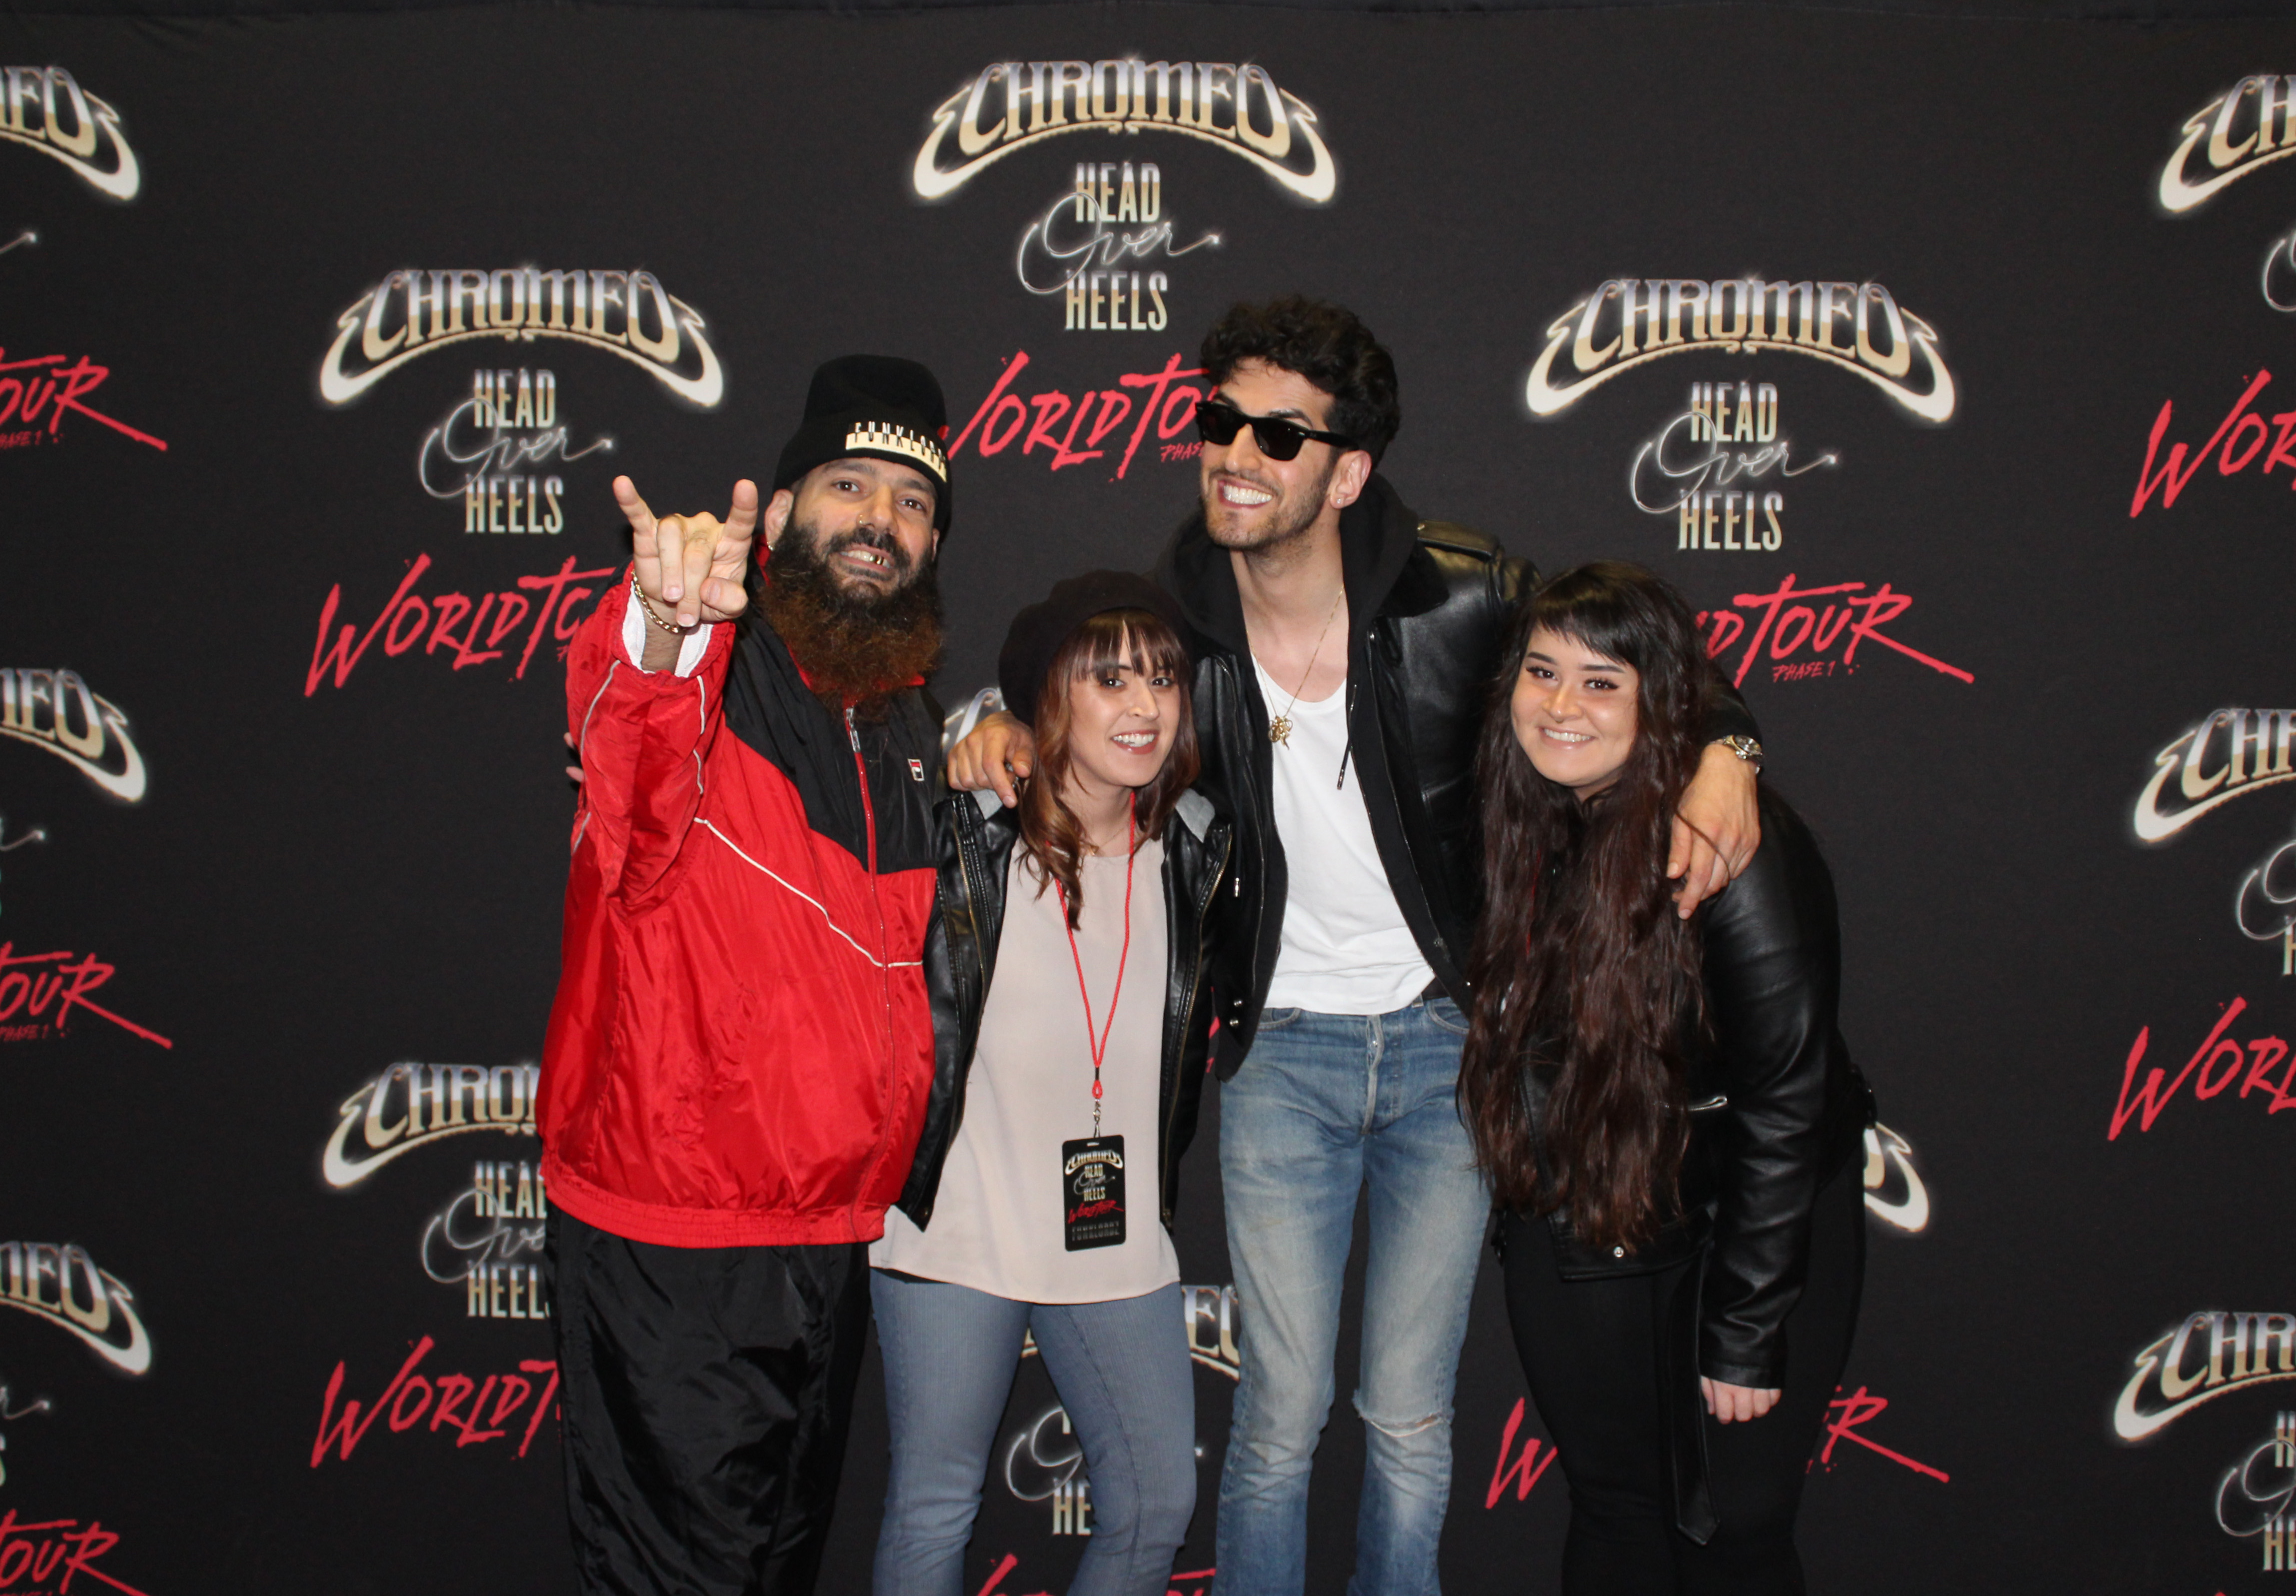 Chromeo head over heels tour official vip packages cid entertainment one 1 general admission chromeo m4hsunfo